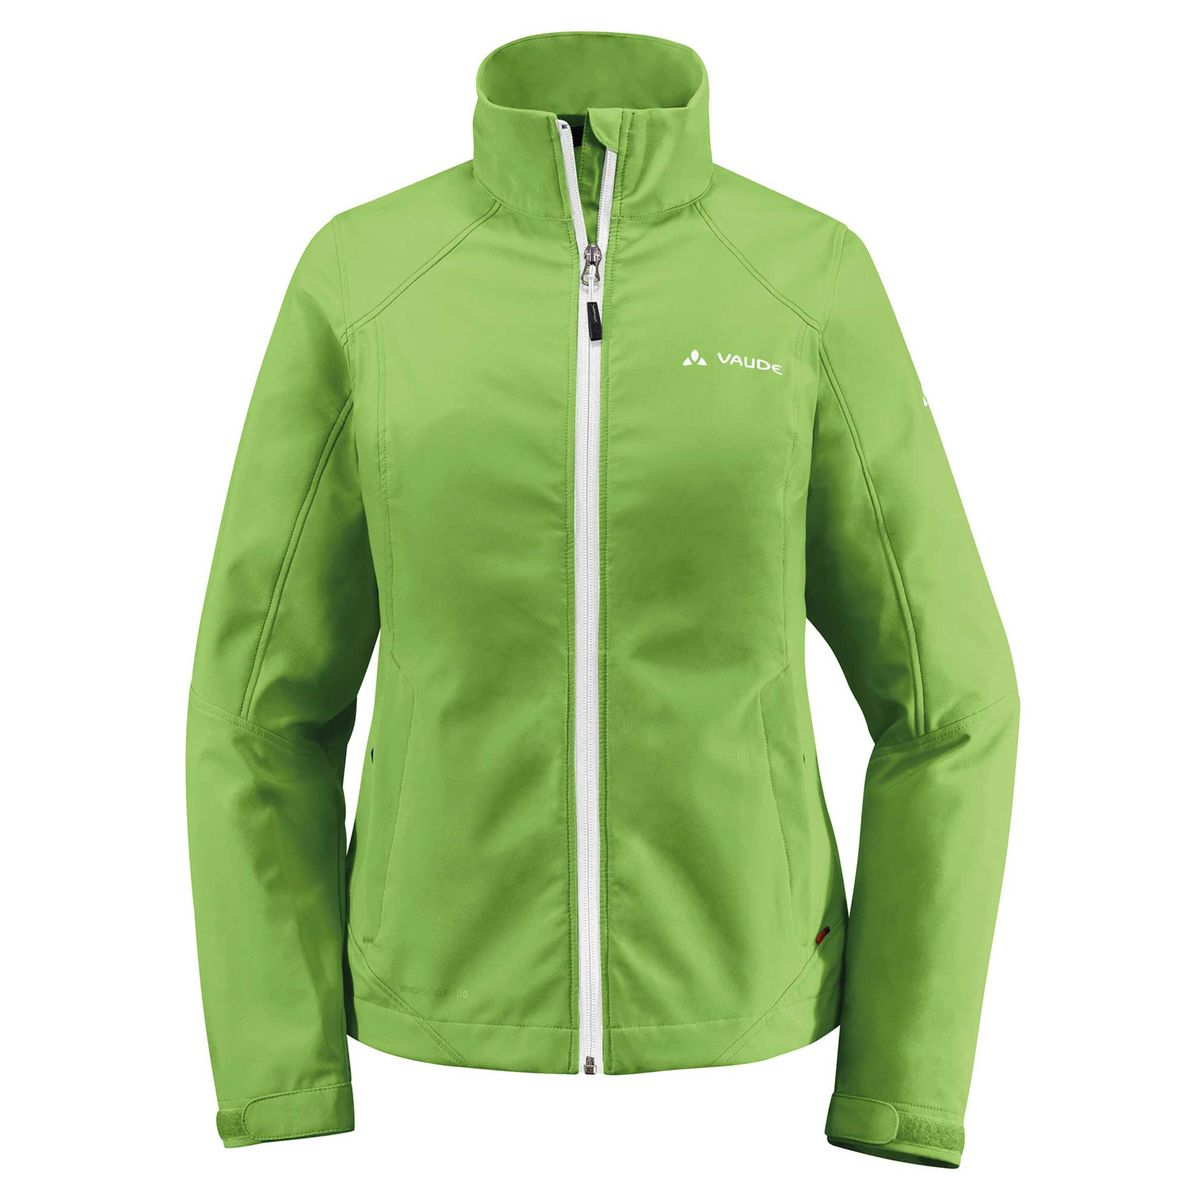 HURRICANE III Damen Soft-Shell Jacke